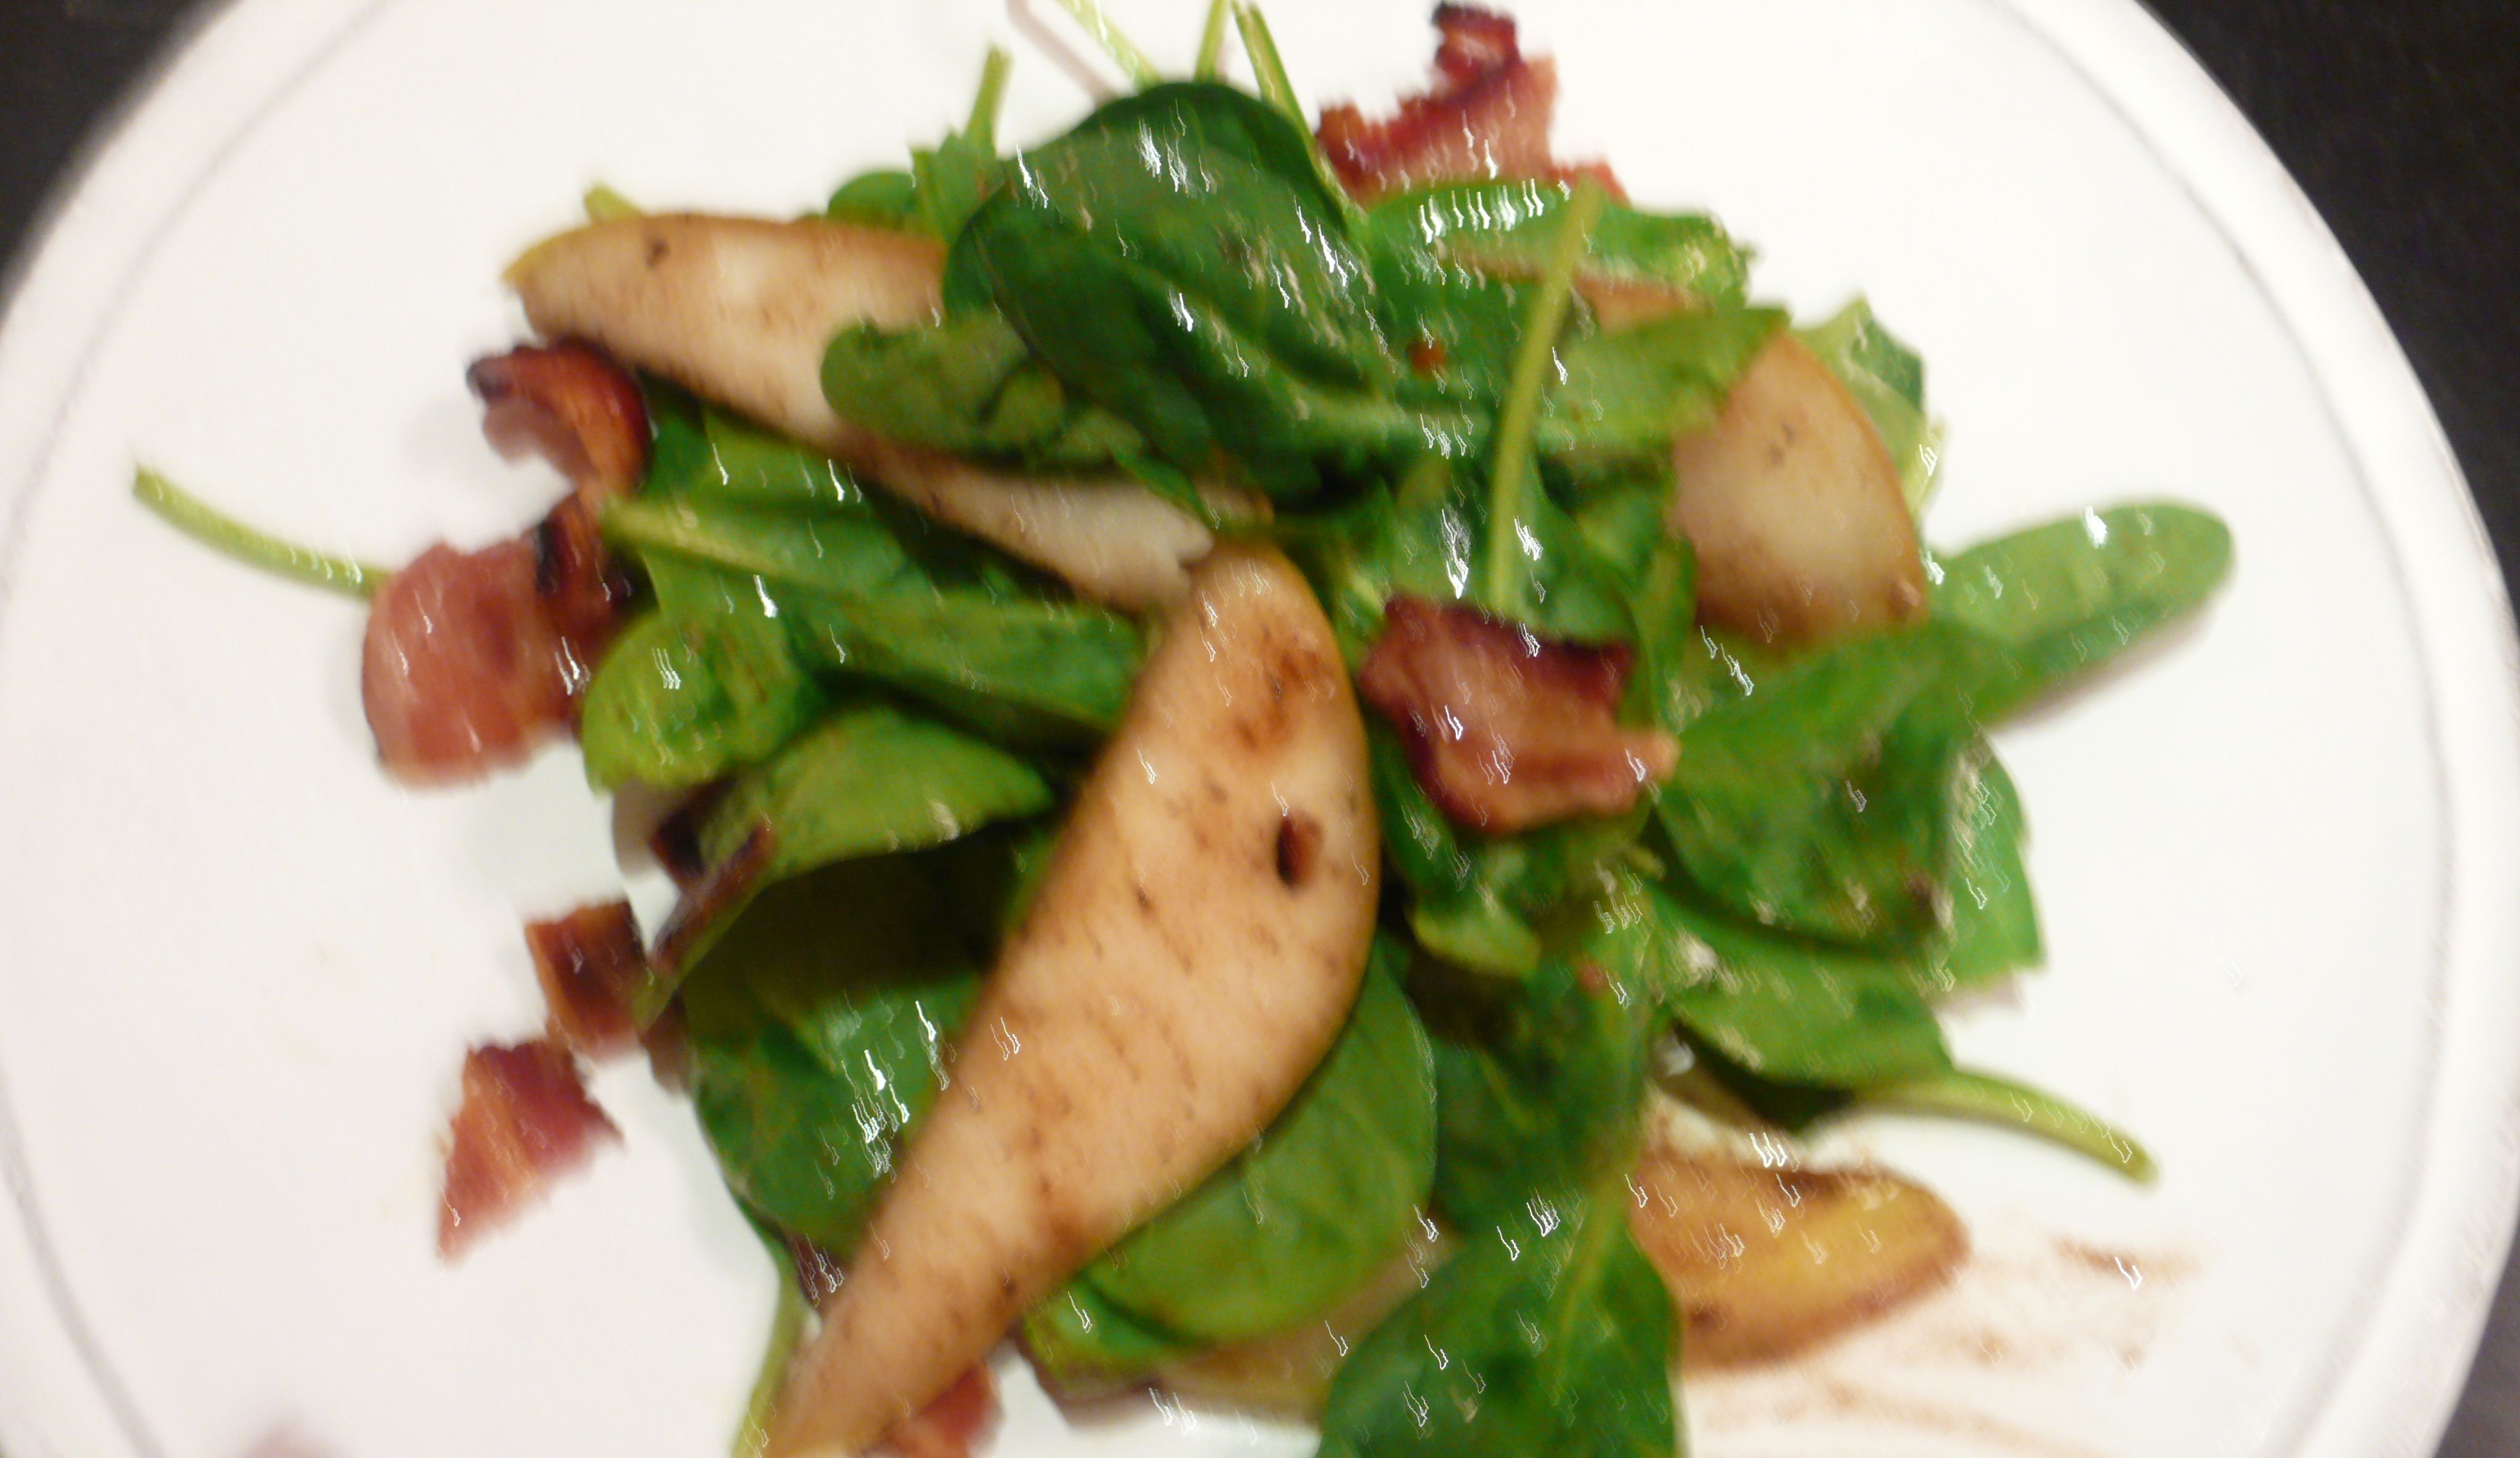 SPINACH AND PEAR SALAD